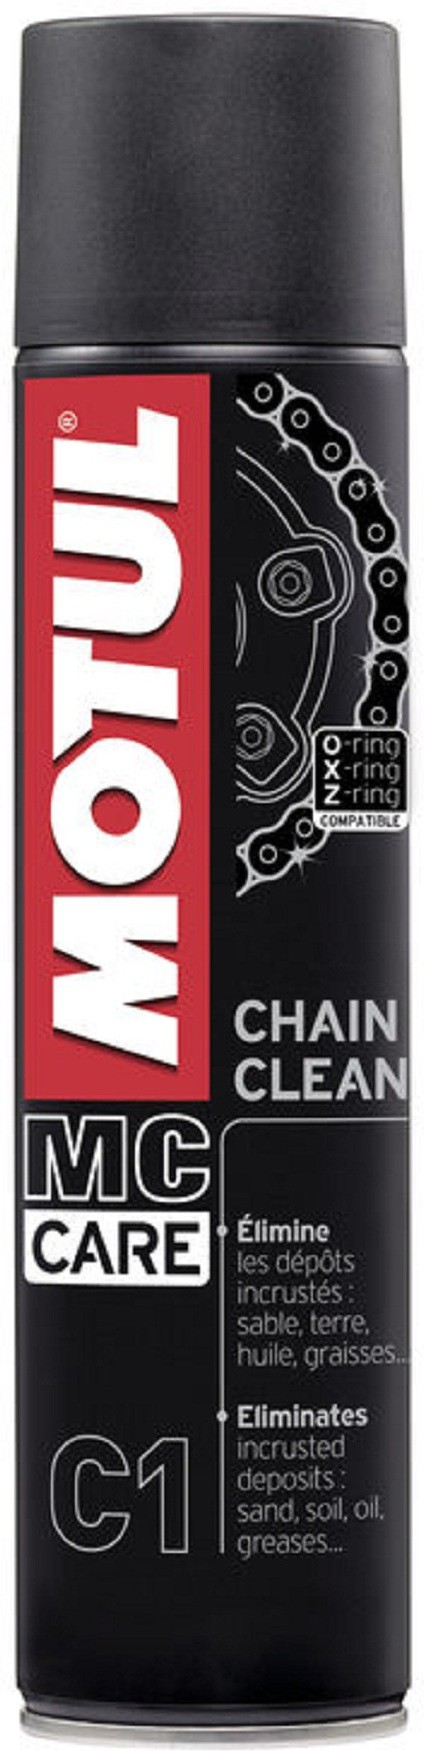 Deals | Flipkart - Vehicle Lubricants Motor Engine & Chain